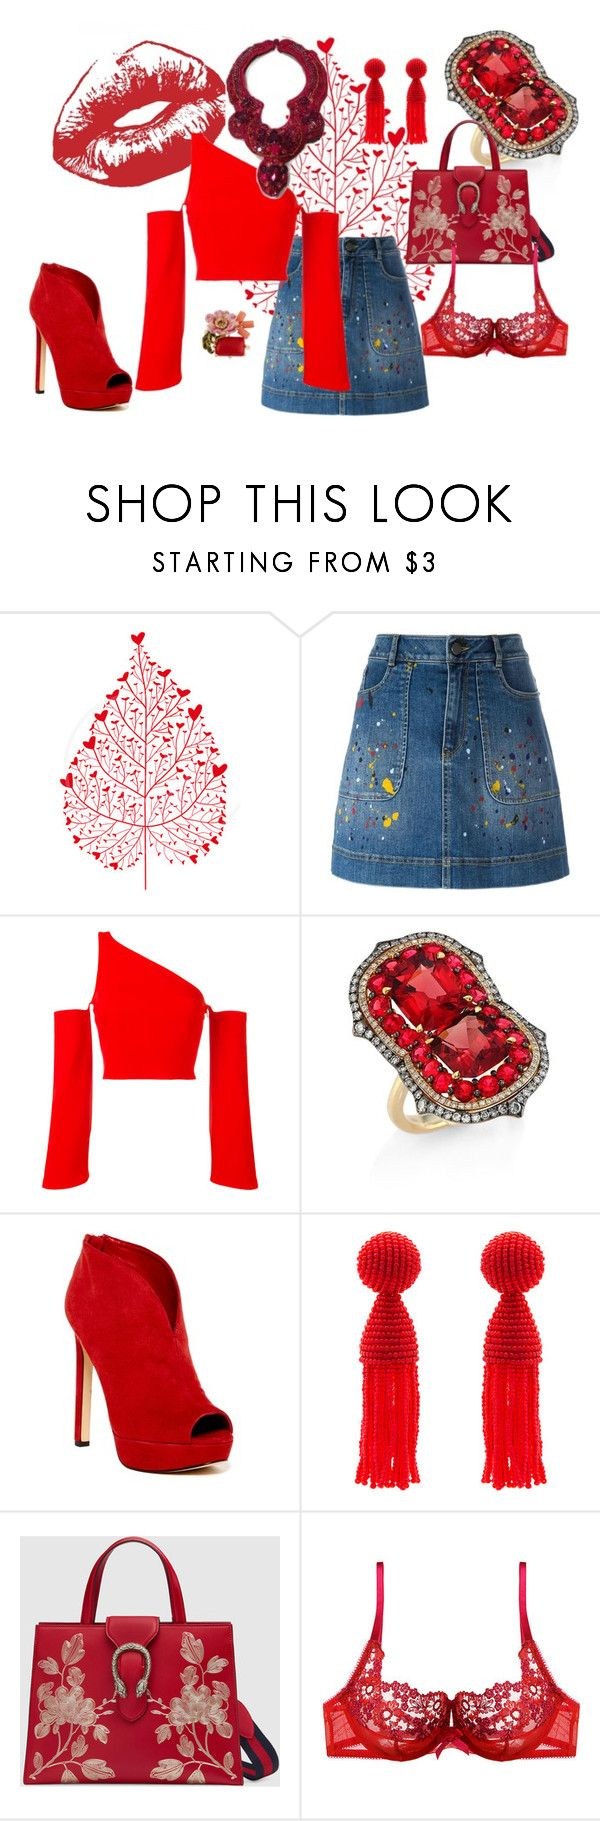 """ruby red"" by mimmiandkinkistatementjewelry ❤ liked on Polyvore featuring Alice + Olivia, Thierry Mugler, Ivy, Nine West, Oscar de la Renta, Gucci, Gossard and Les Néréides"